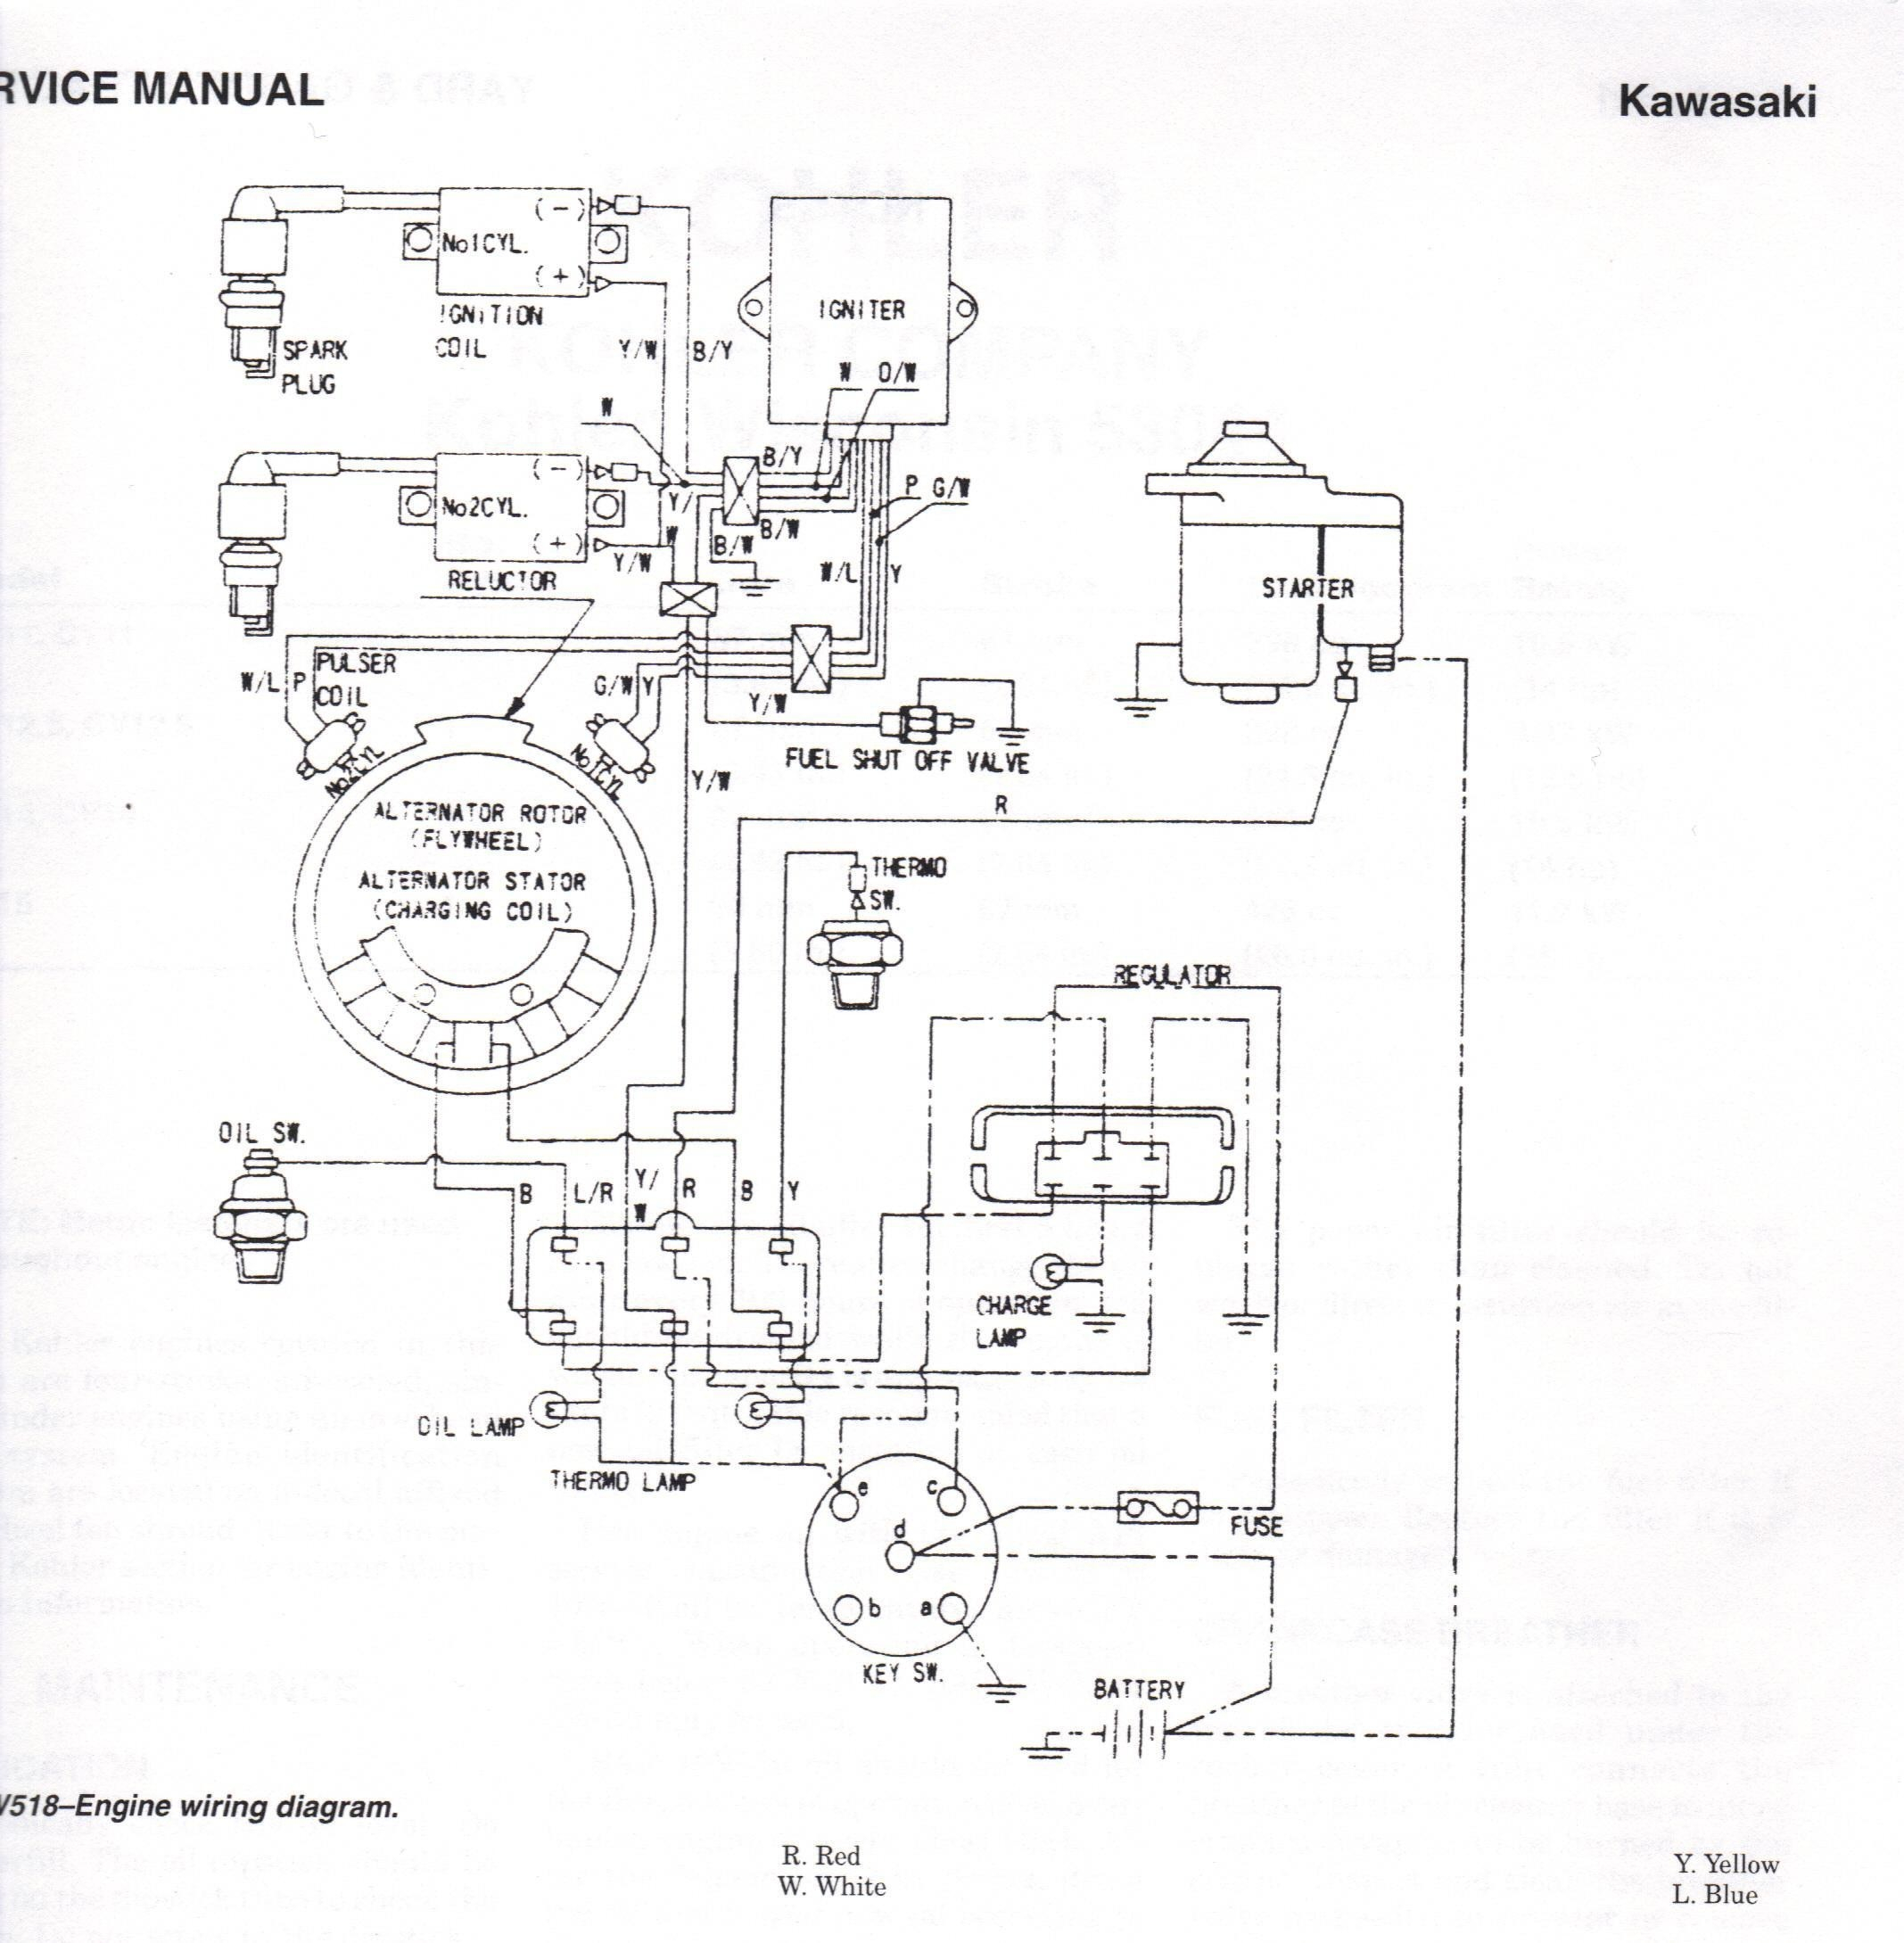 john deere l110 wiring harness everything wiring diagraml110 wiring diagram wiring diagrams john deere l110 wiring harness